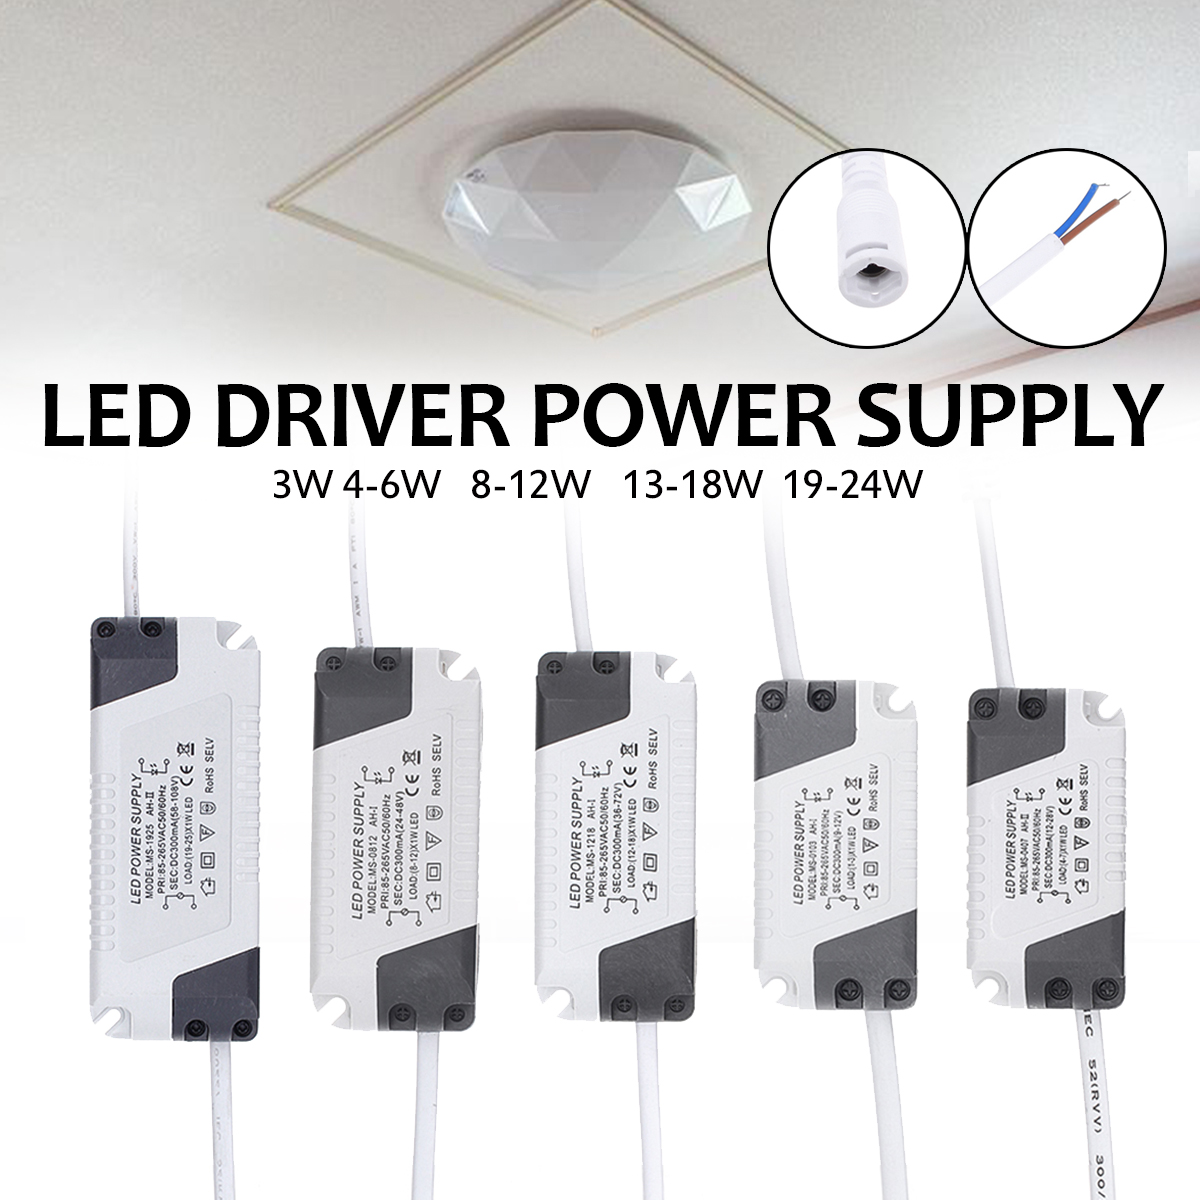 Led Driver 300ma 85 265v Light Transformer Constant Current Power Drives Two 3 Watt Ledselectronics Project Circuts Suitable For Lights Ceiling And Other Indoor Projects Etc